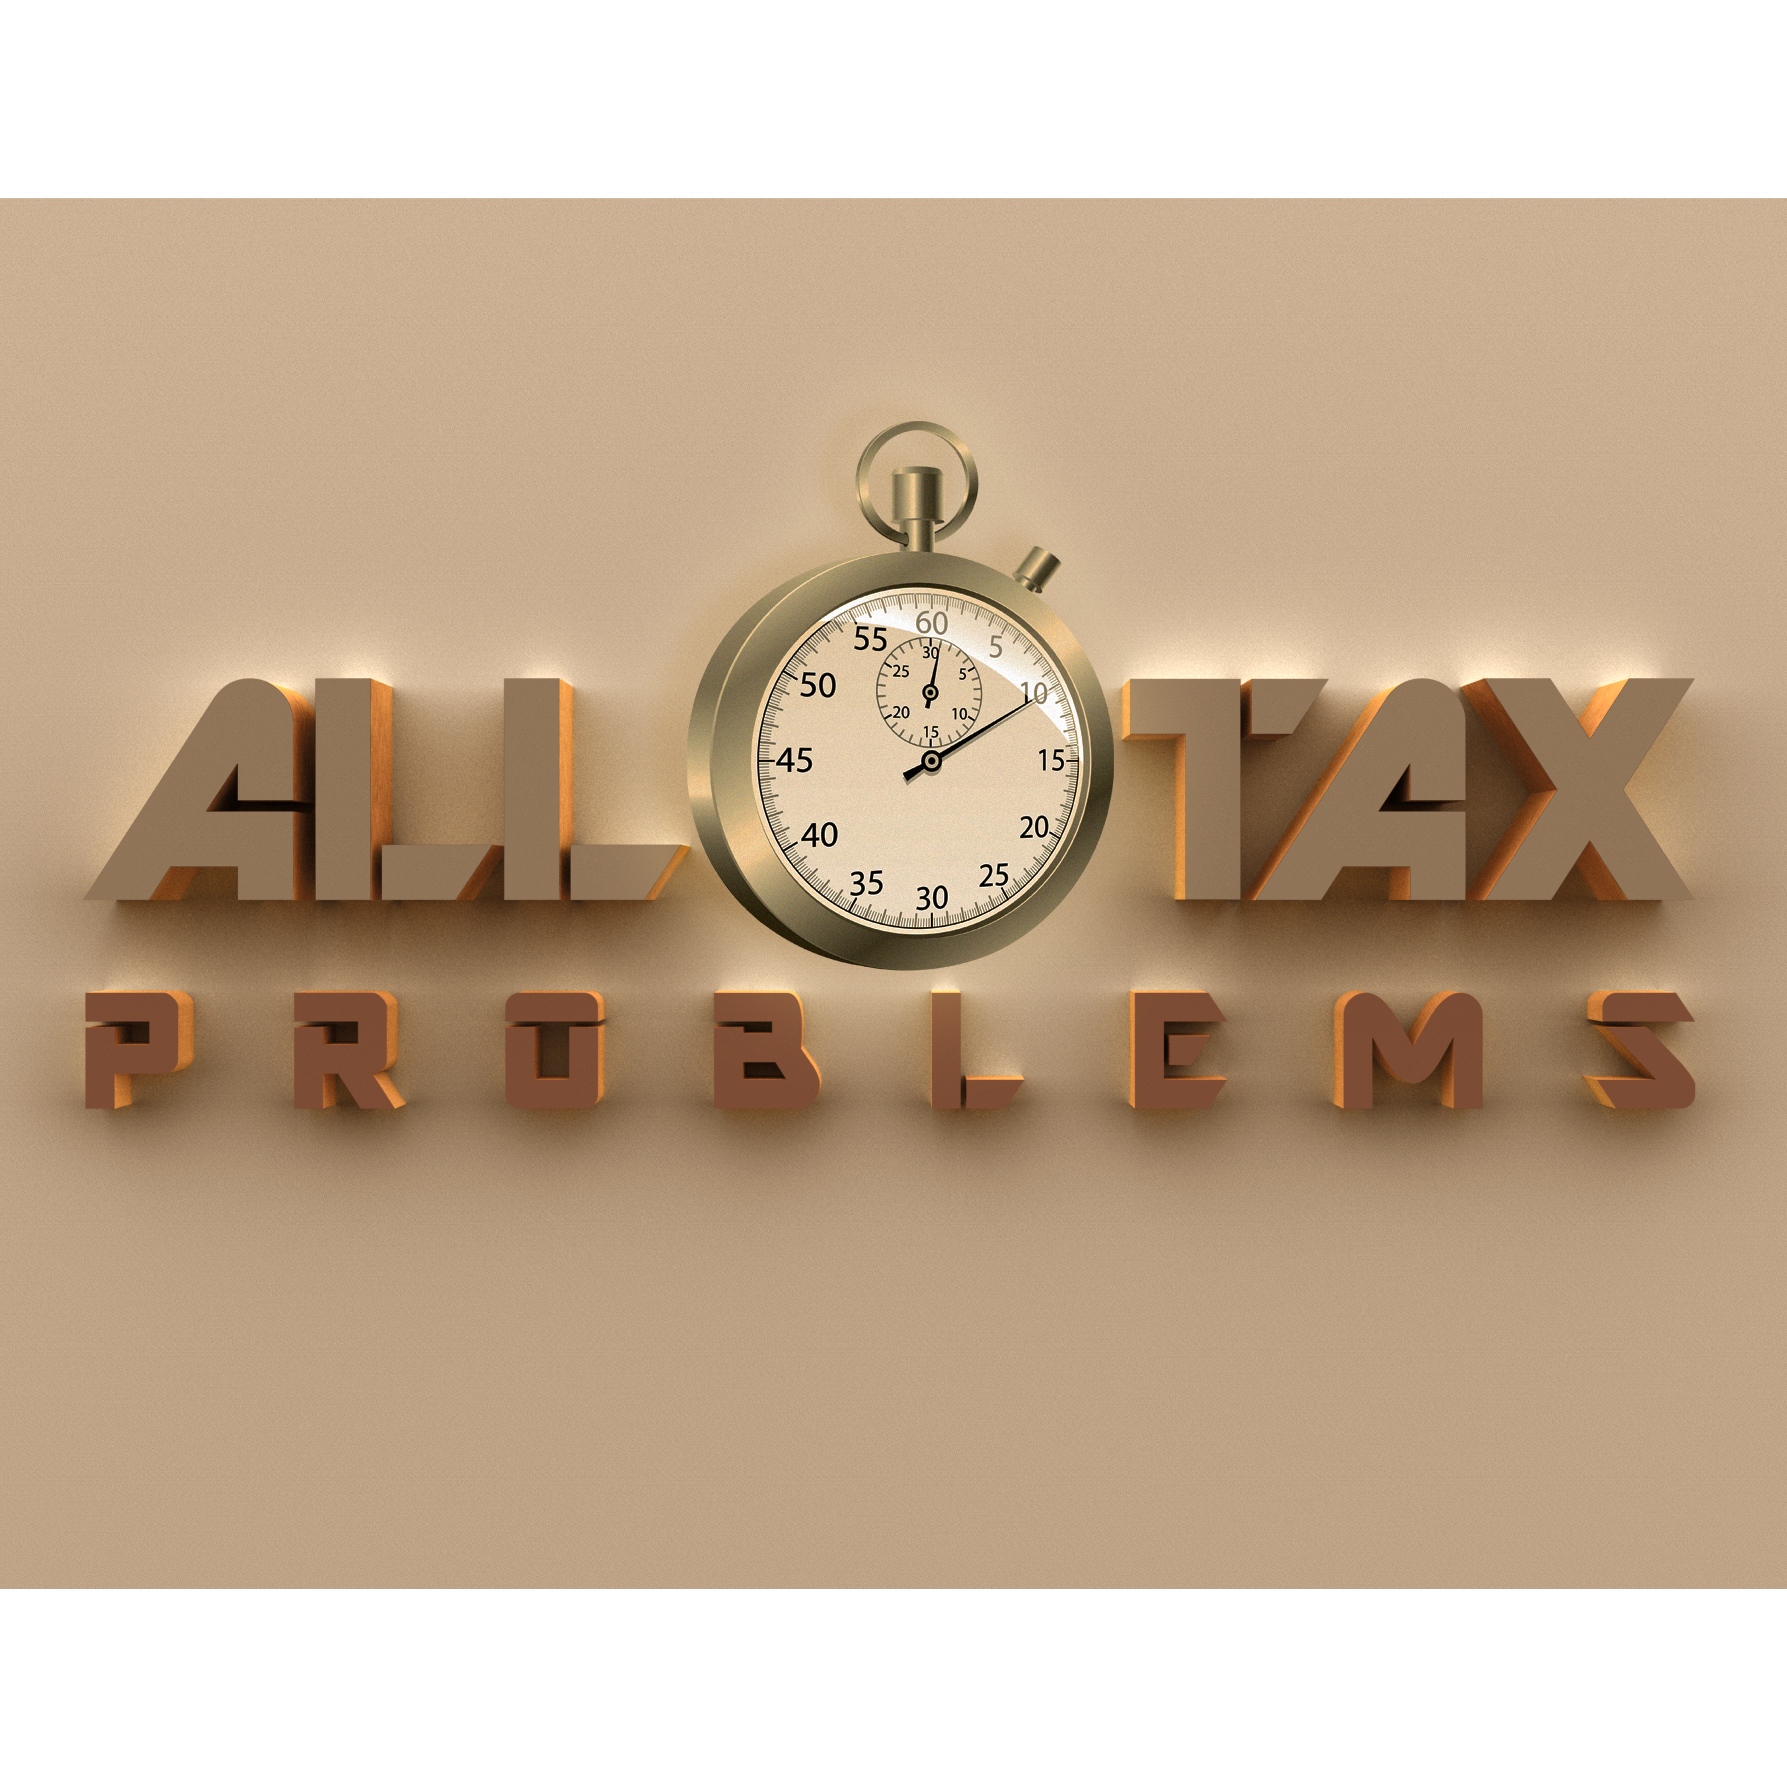 ALL Tax Problems | IRS Tax Debt | Tax Attorney Riverside CA